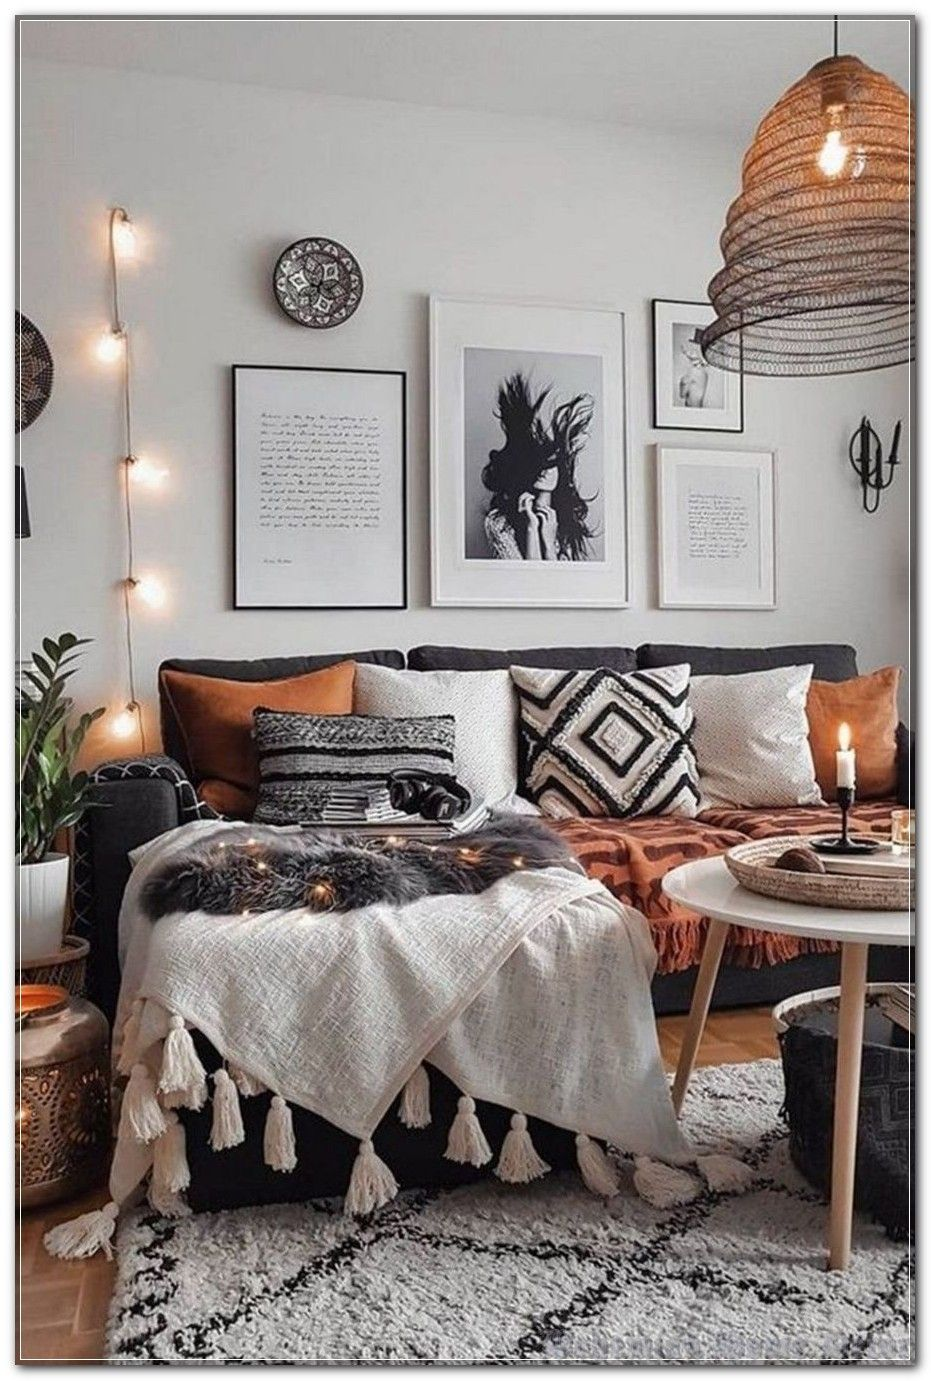 Bohemian Home Decor Made Simple – Even Your Kids Can Do It